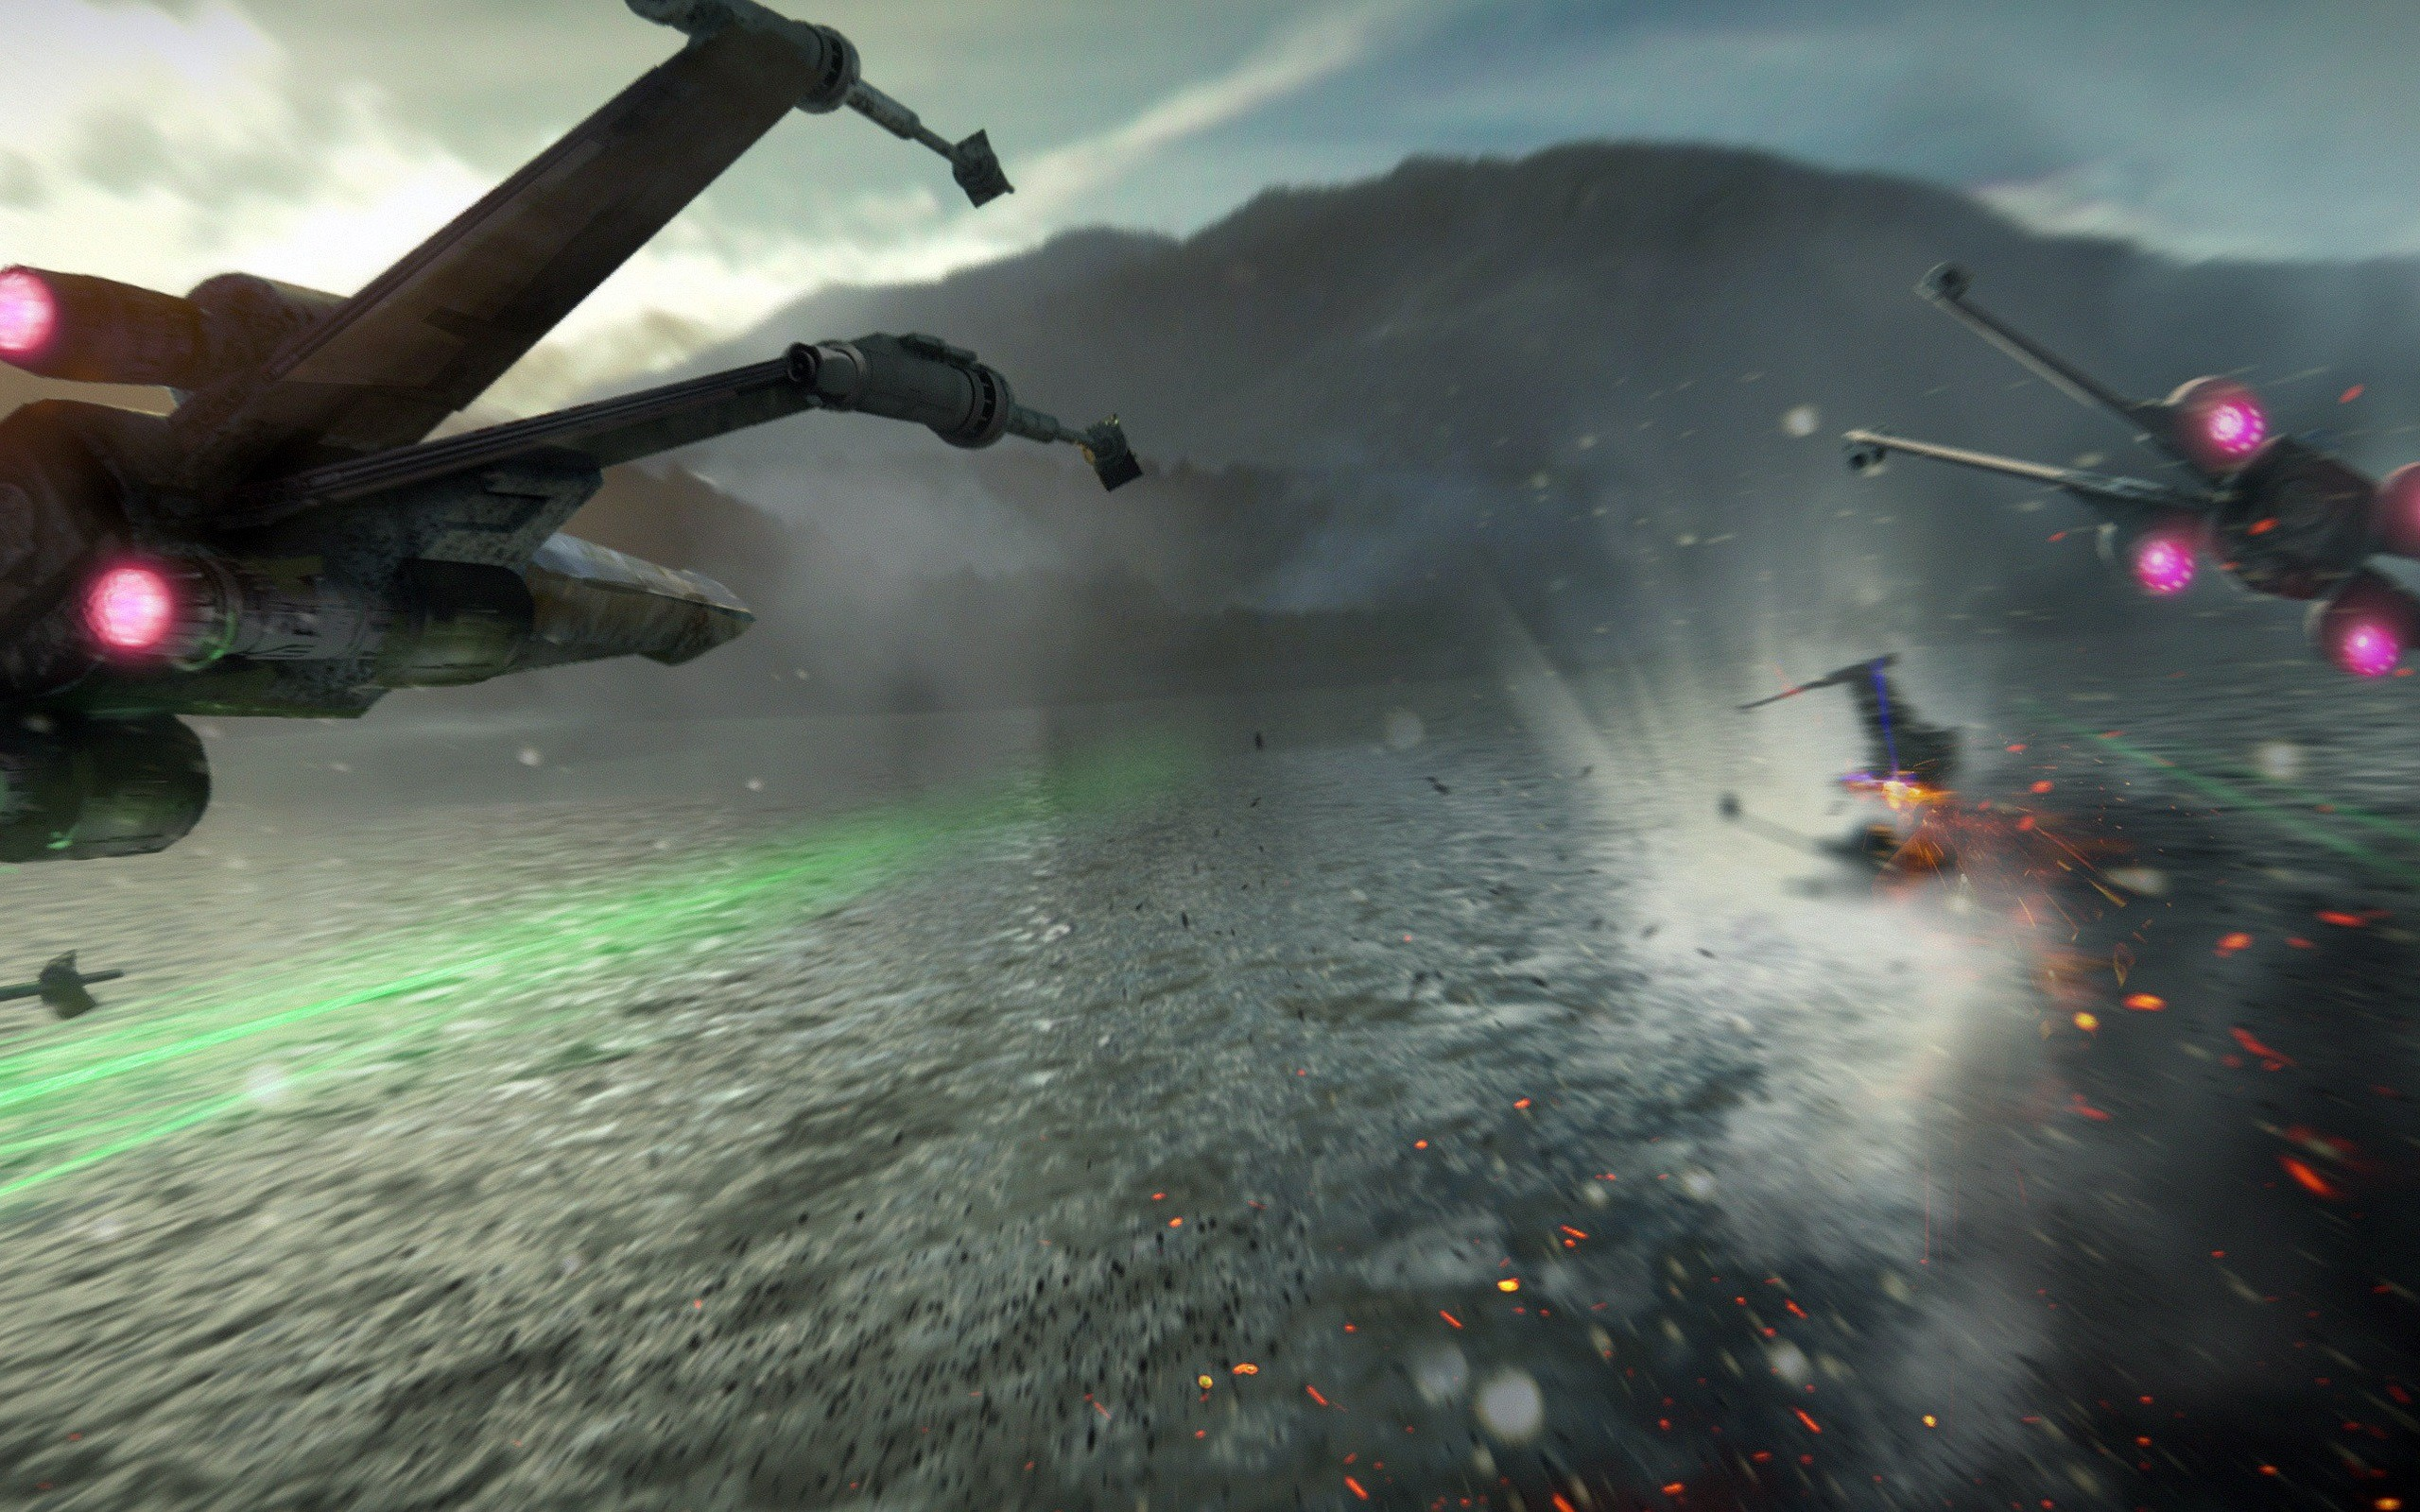 Star Wars The Force Awakens X Wing Fighter 1 HD Free Wallpaper .